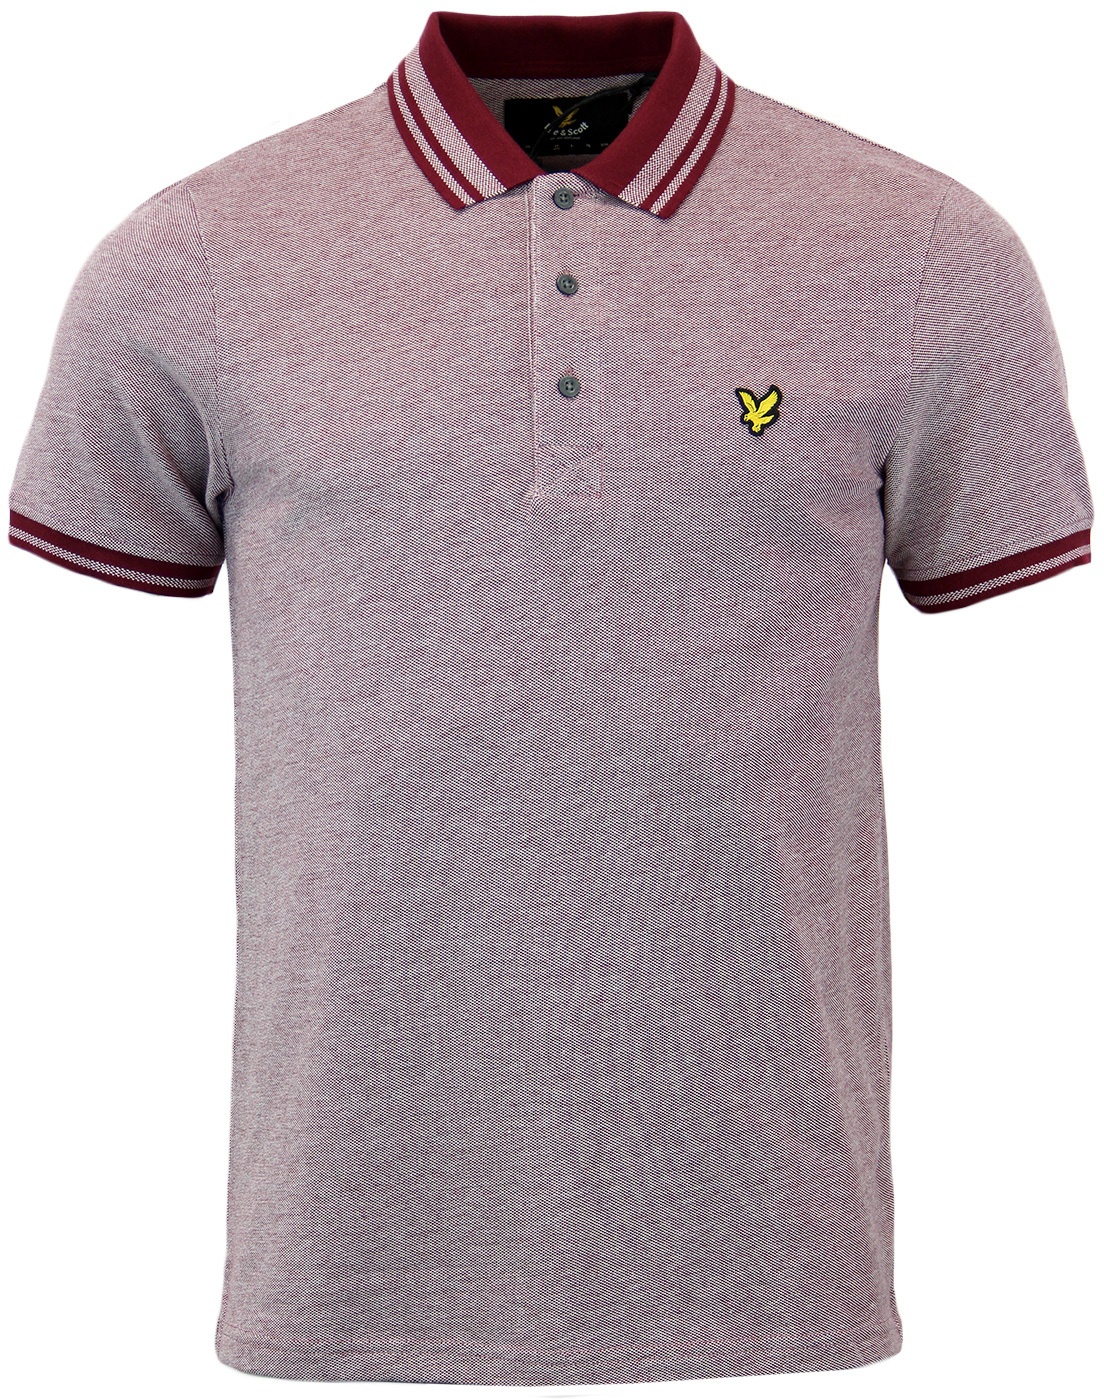 LYLE & SCOTT Retro Mod Tipped Oxford Pique Polo